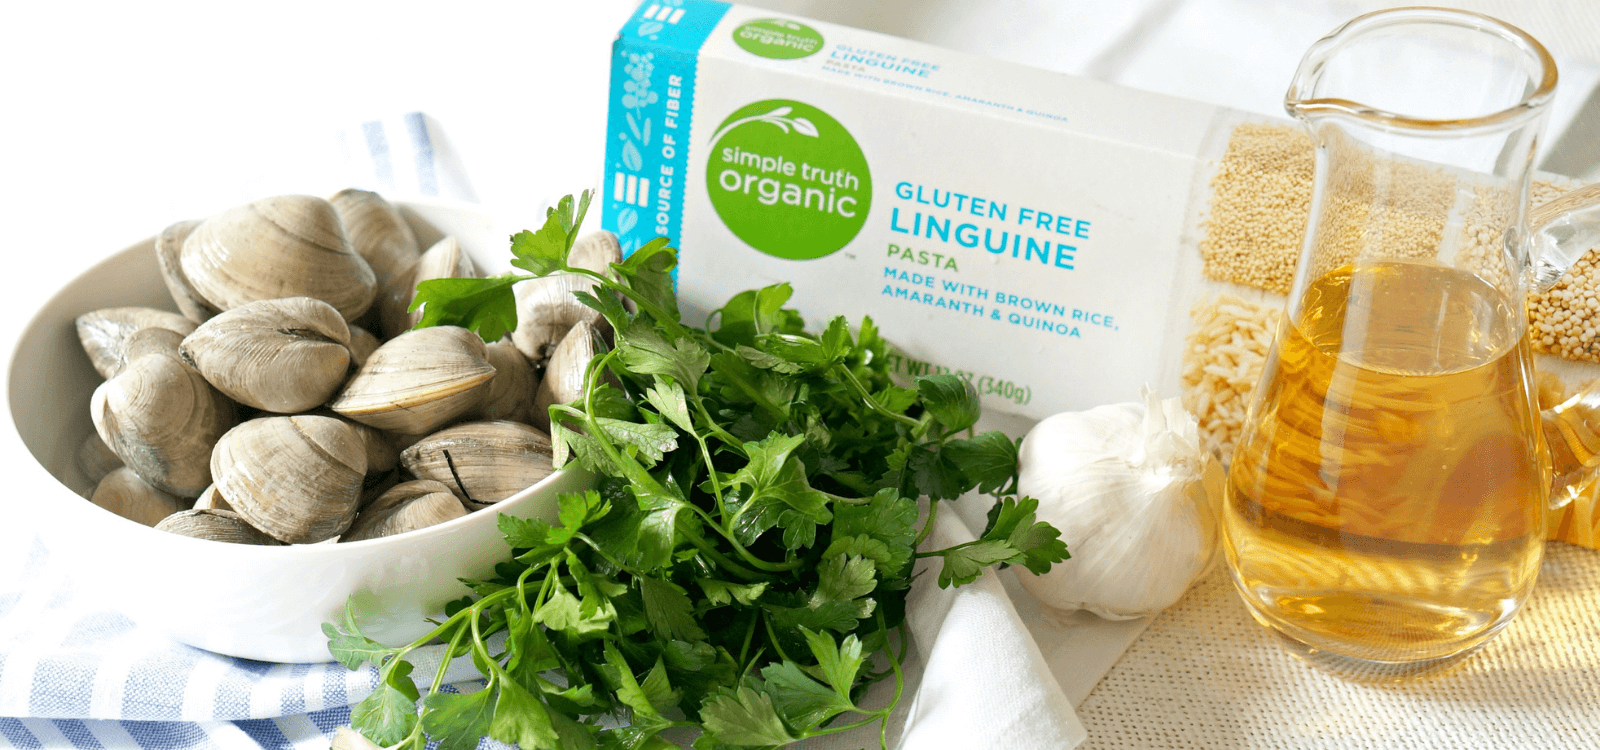 Gluten-Free Linguine with Clams Ingredients